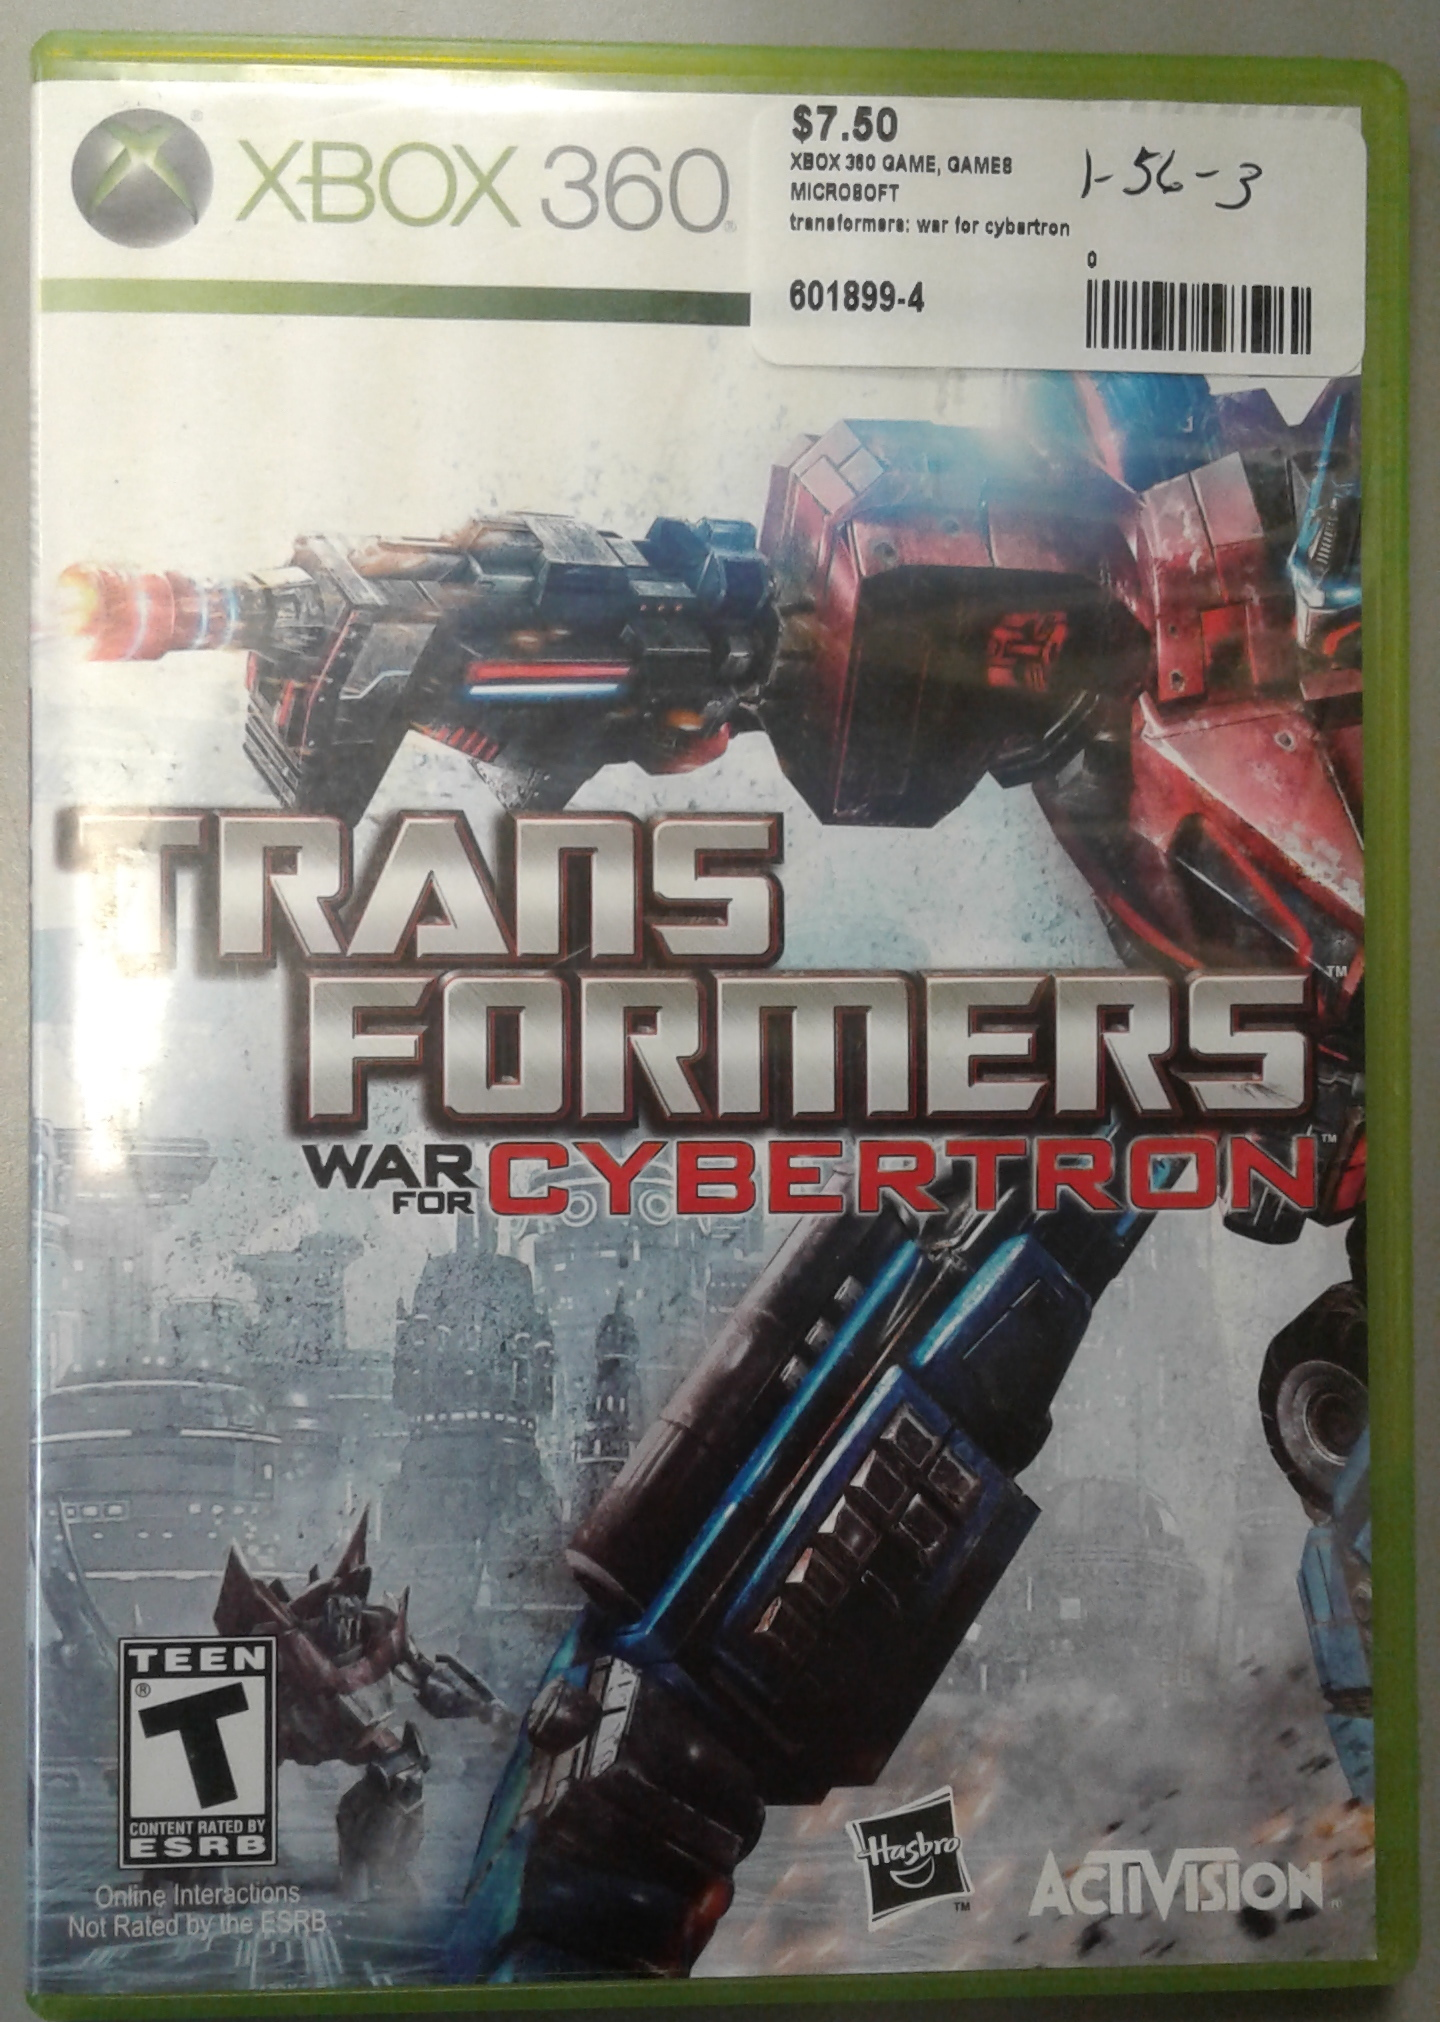 XBOX 360 TRANSFORMERS: WAR FOR CYBERTRON